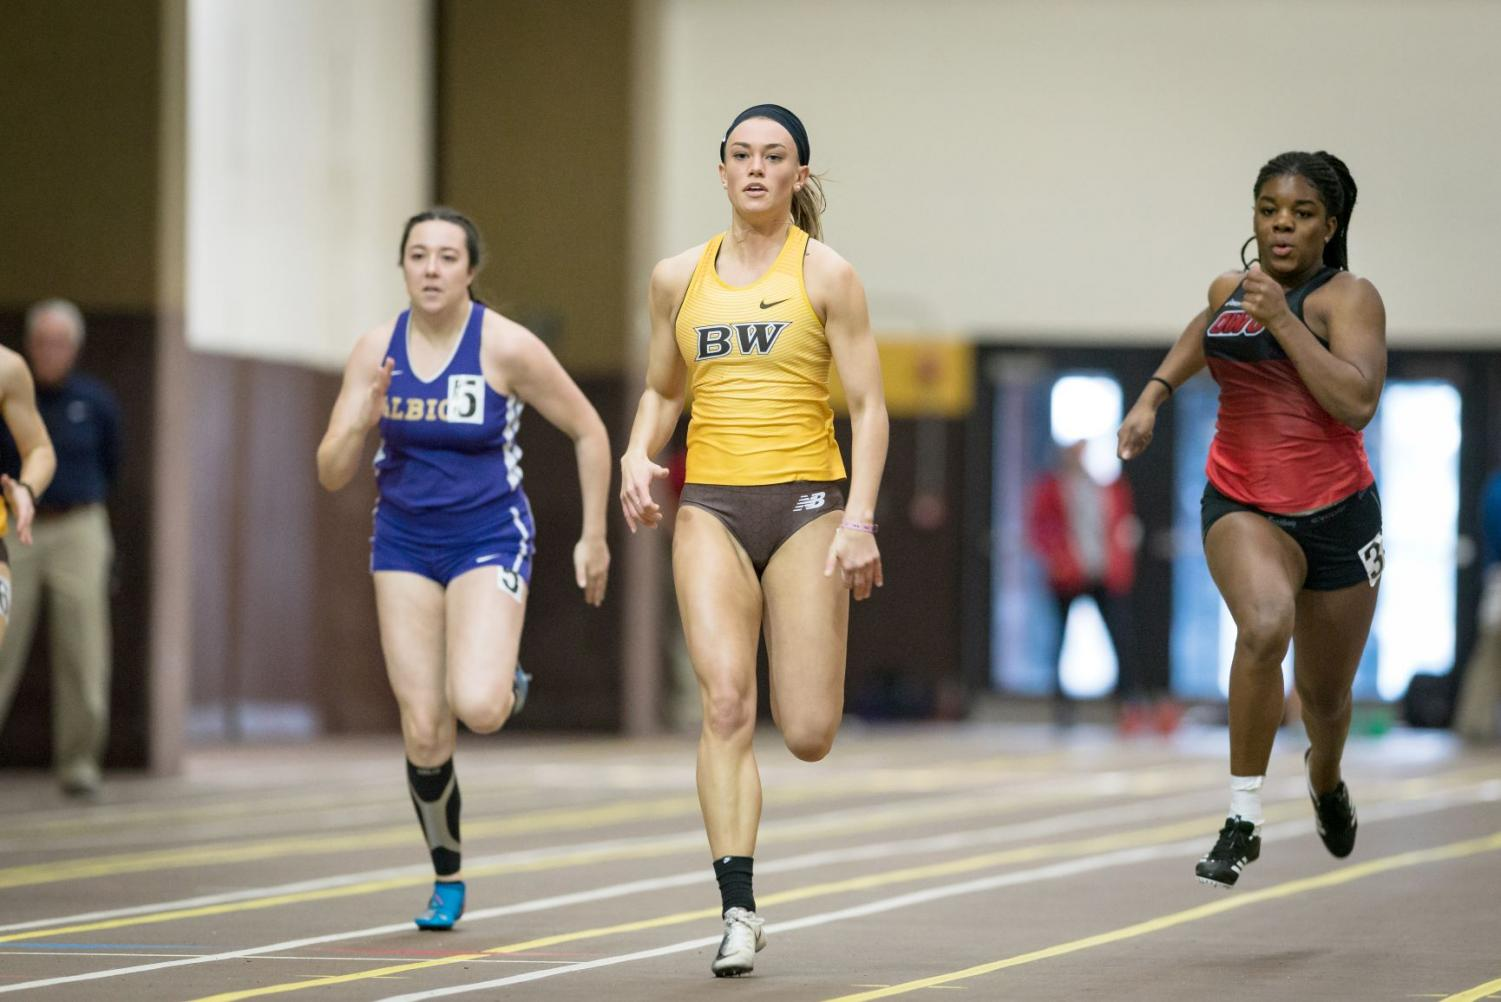 Senior All-OAC sprinter Grace Nemeth was among the individual champions for Baldwin Wallace at the OAC Championships.